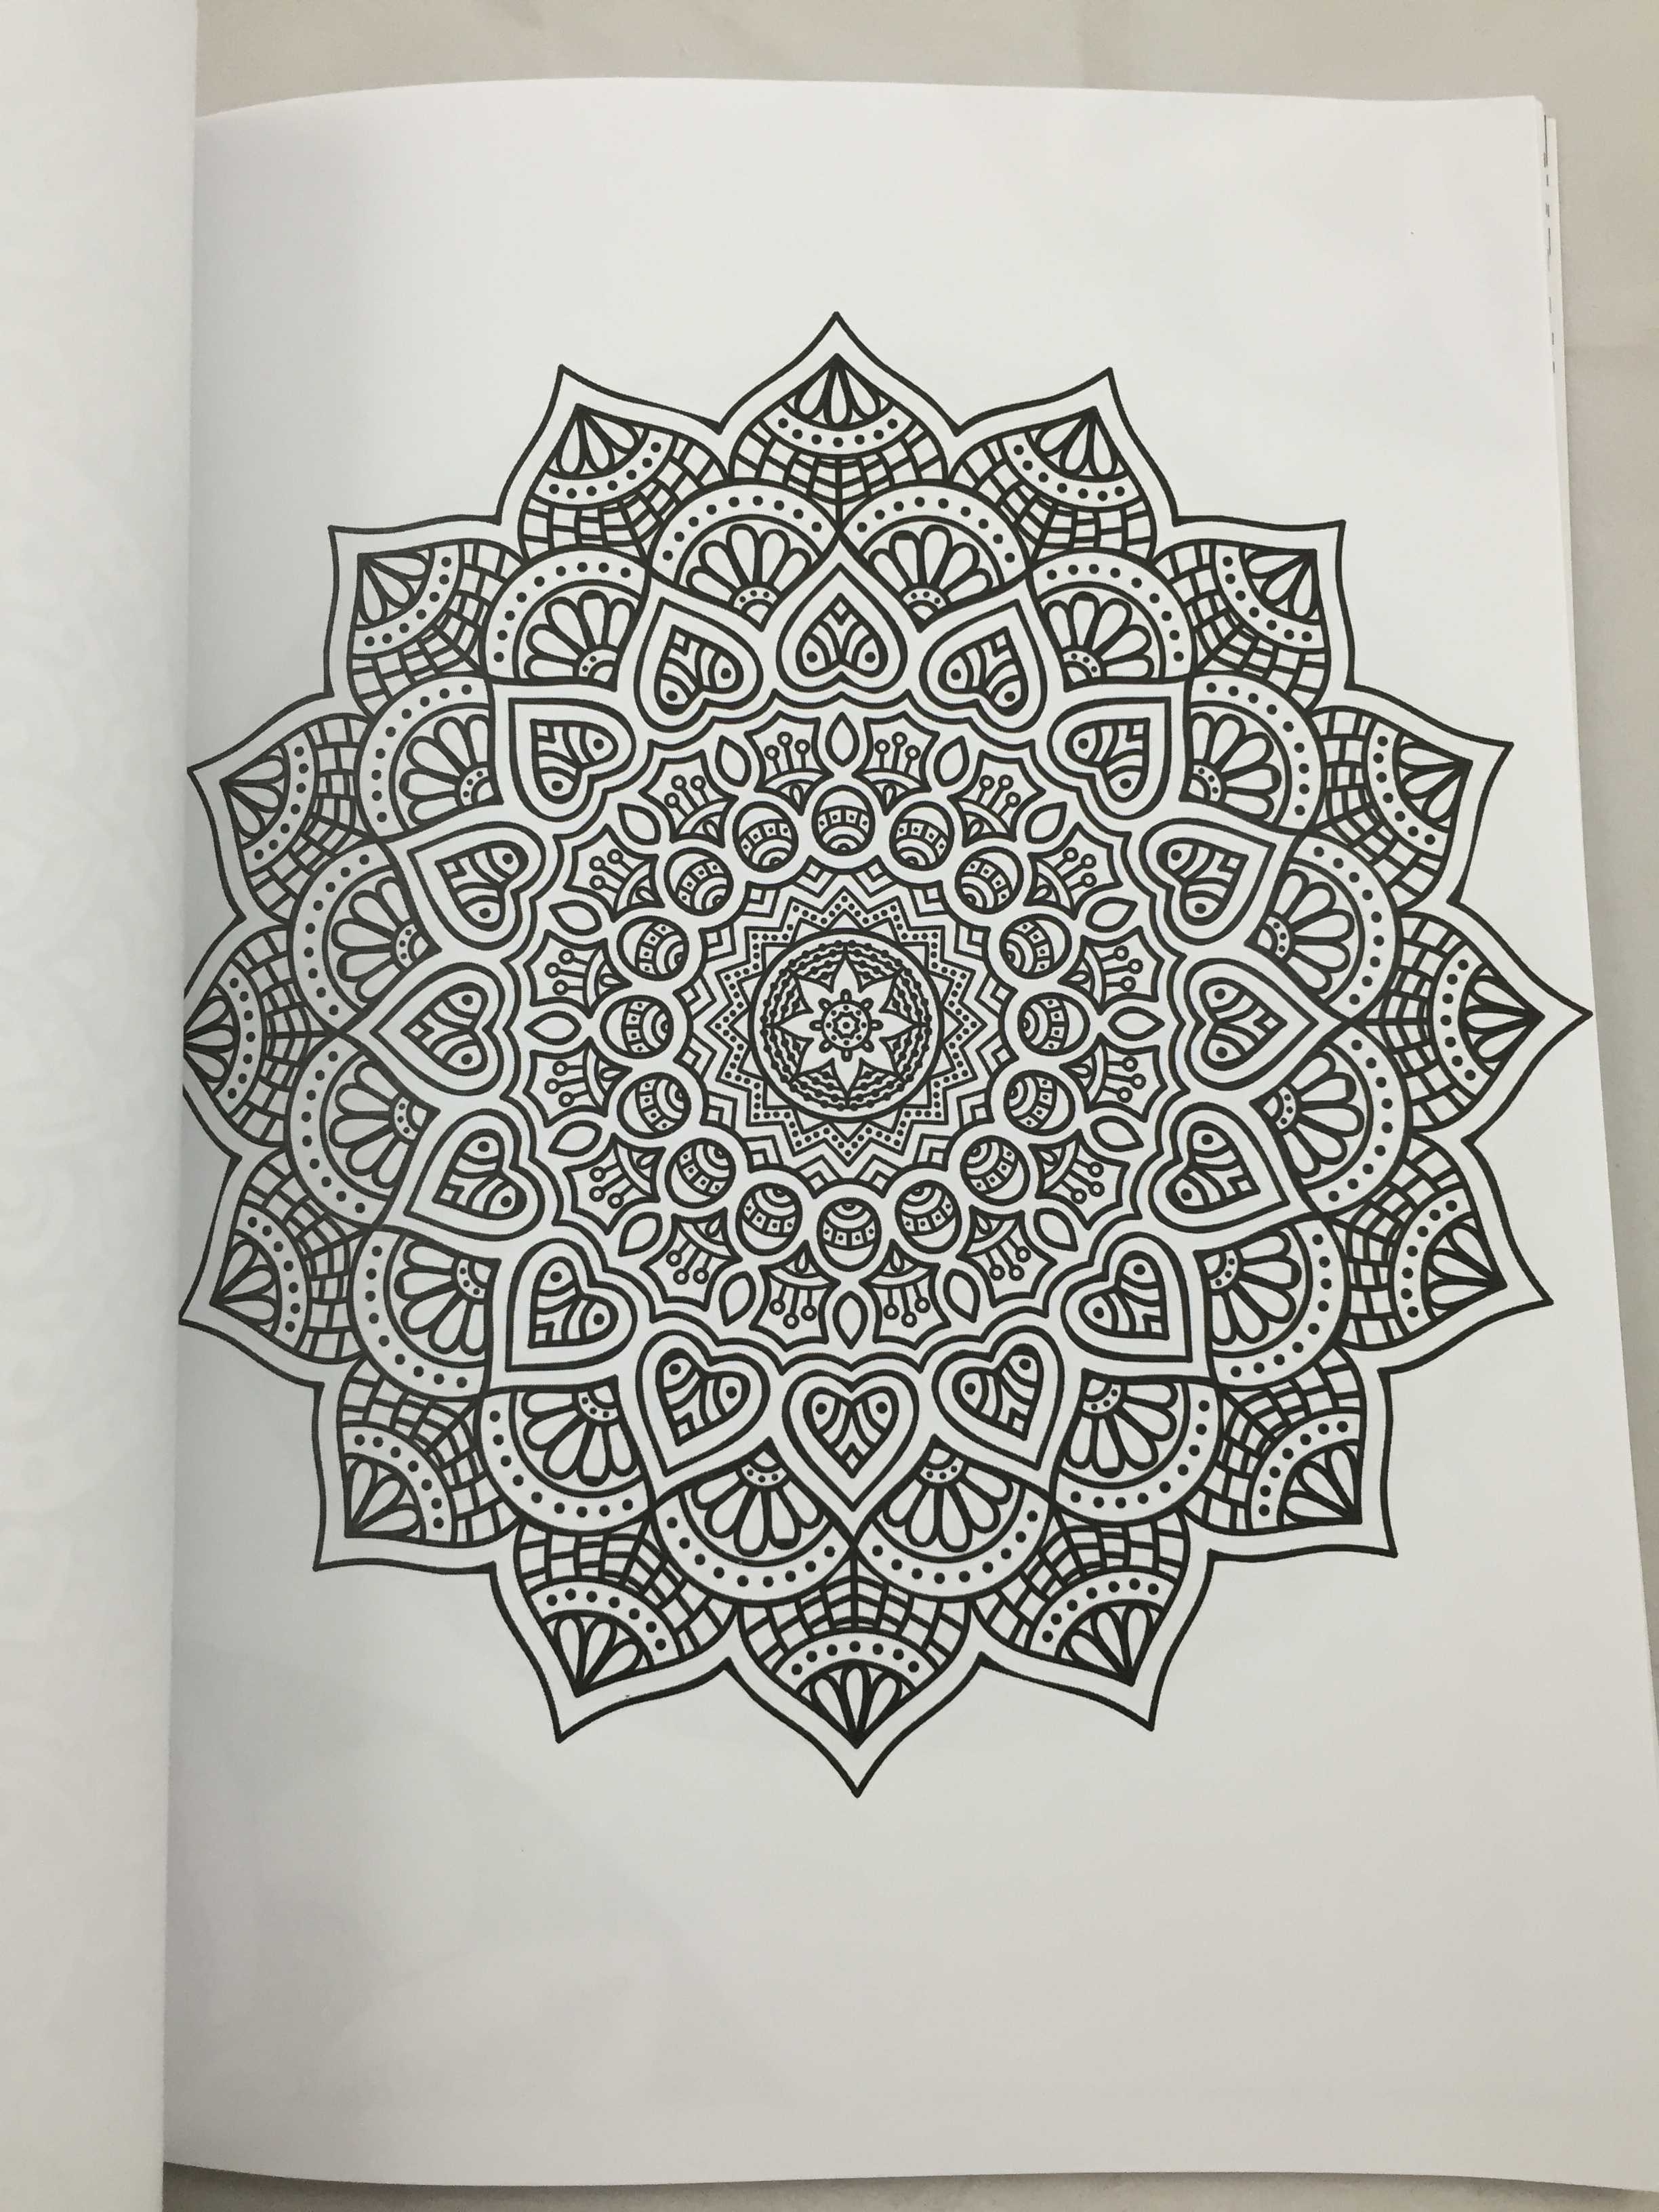 Adult coloring books ebay - Art Therapy Adult Coloring Book Mandalas And More